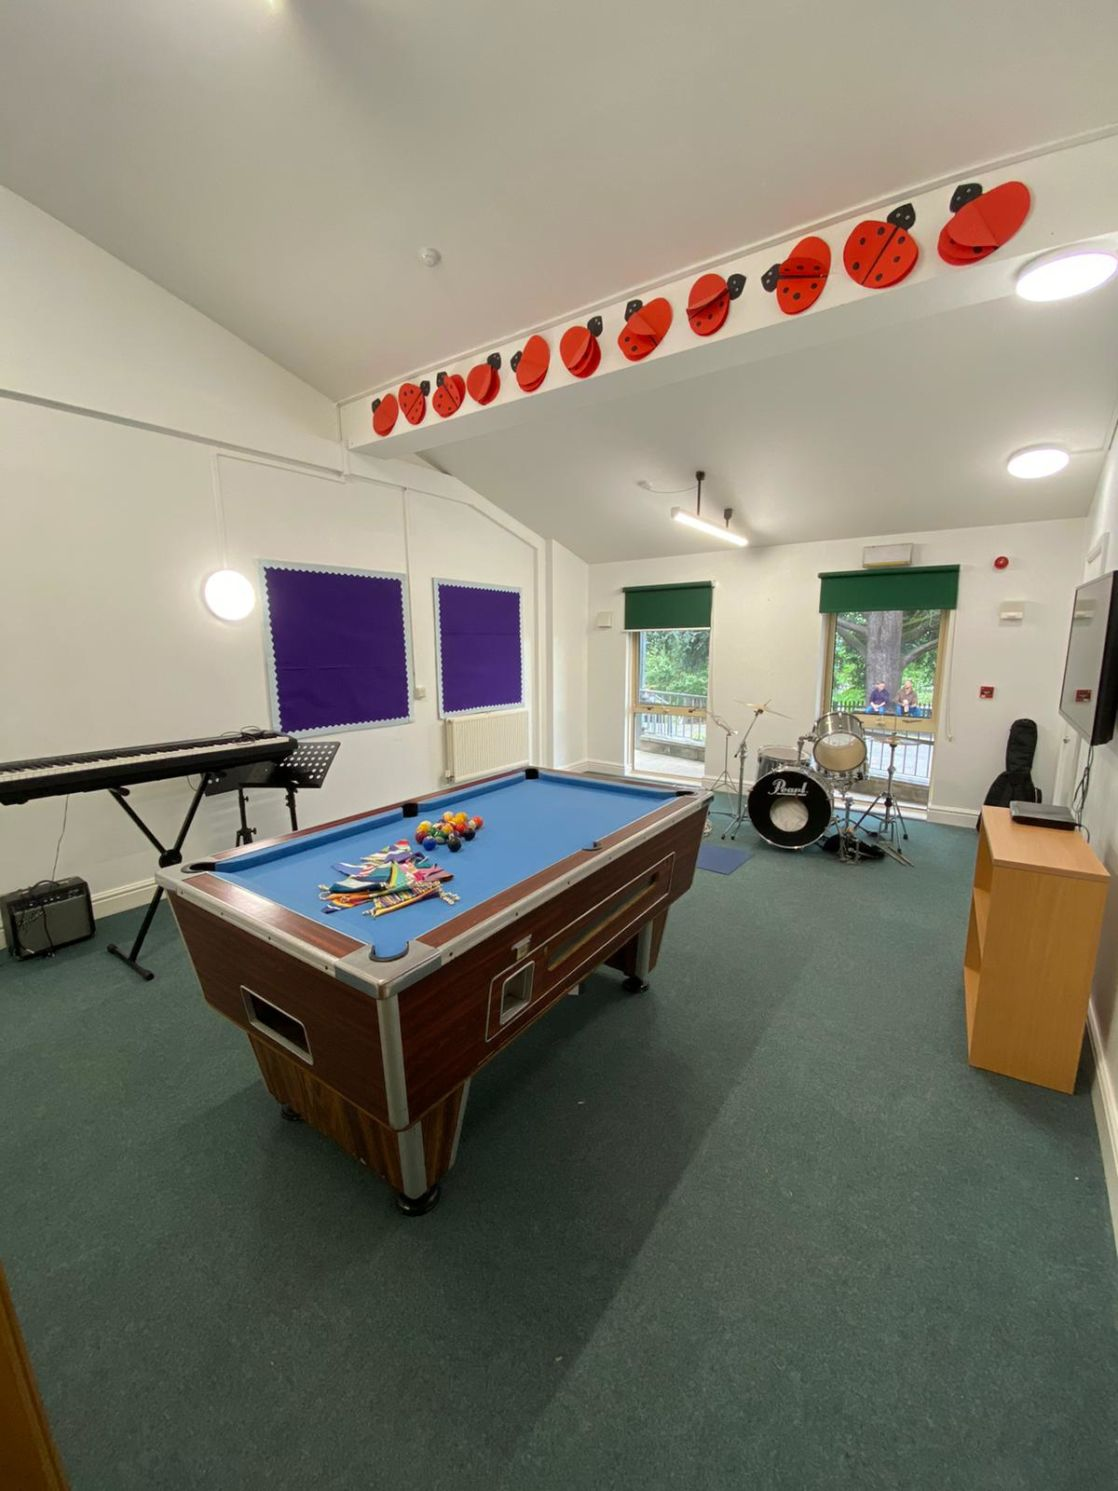 wycliffe boarding school common room for prep students with pool table